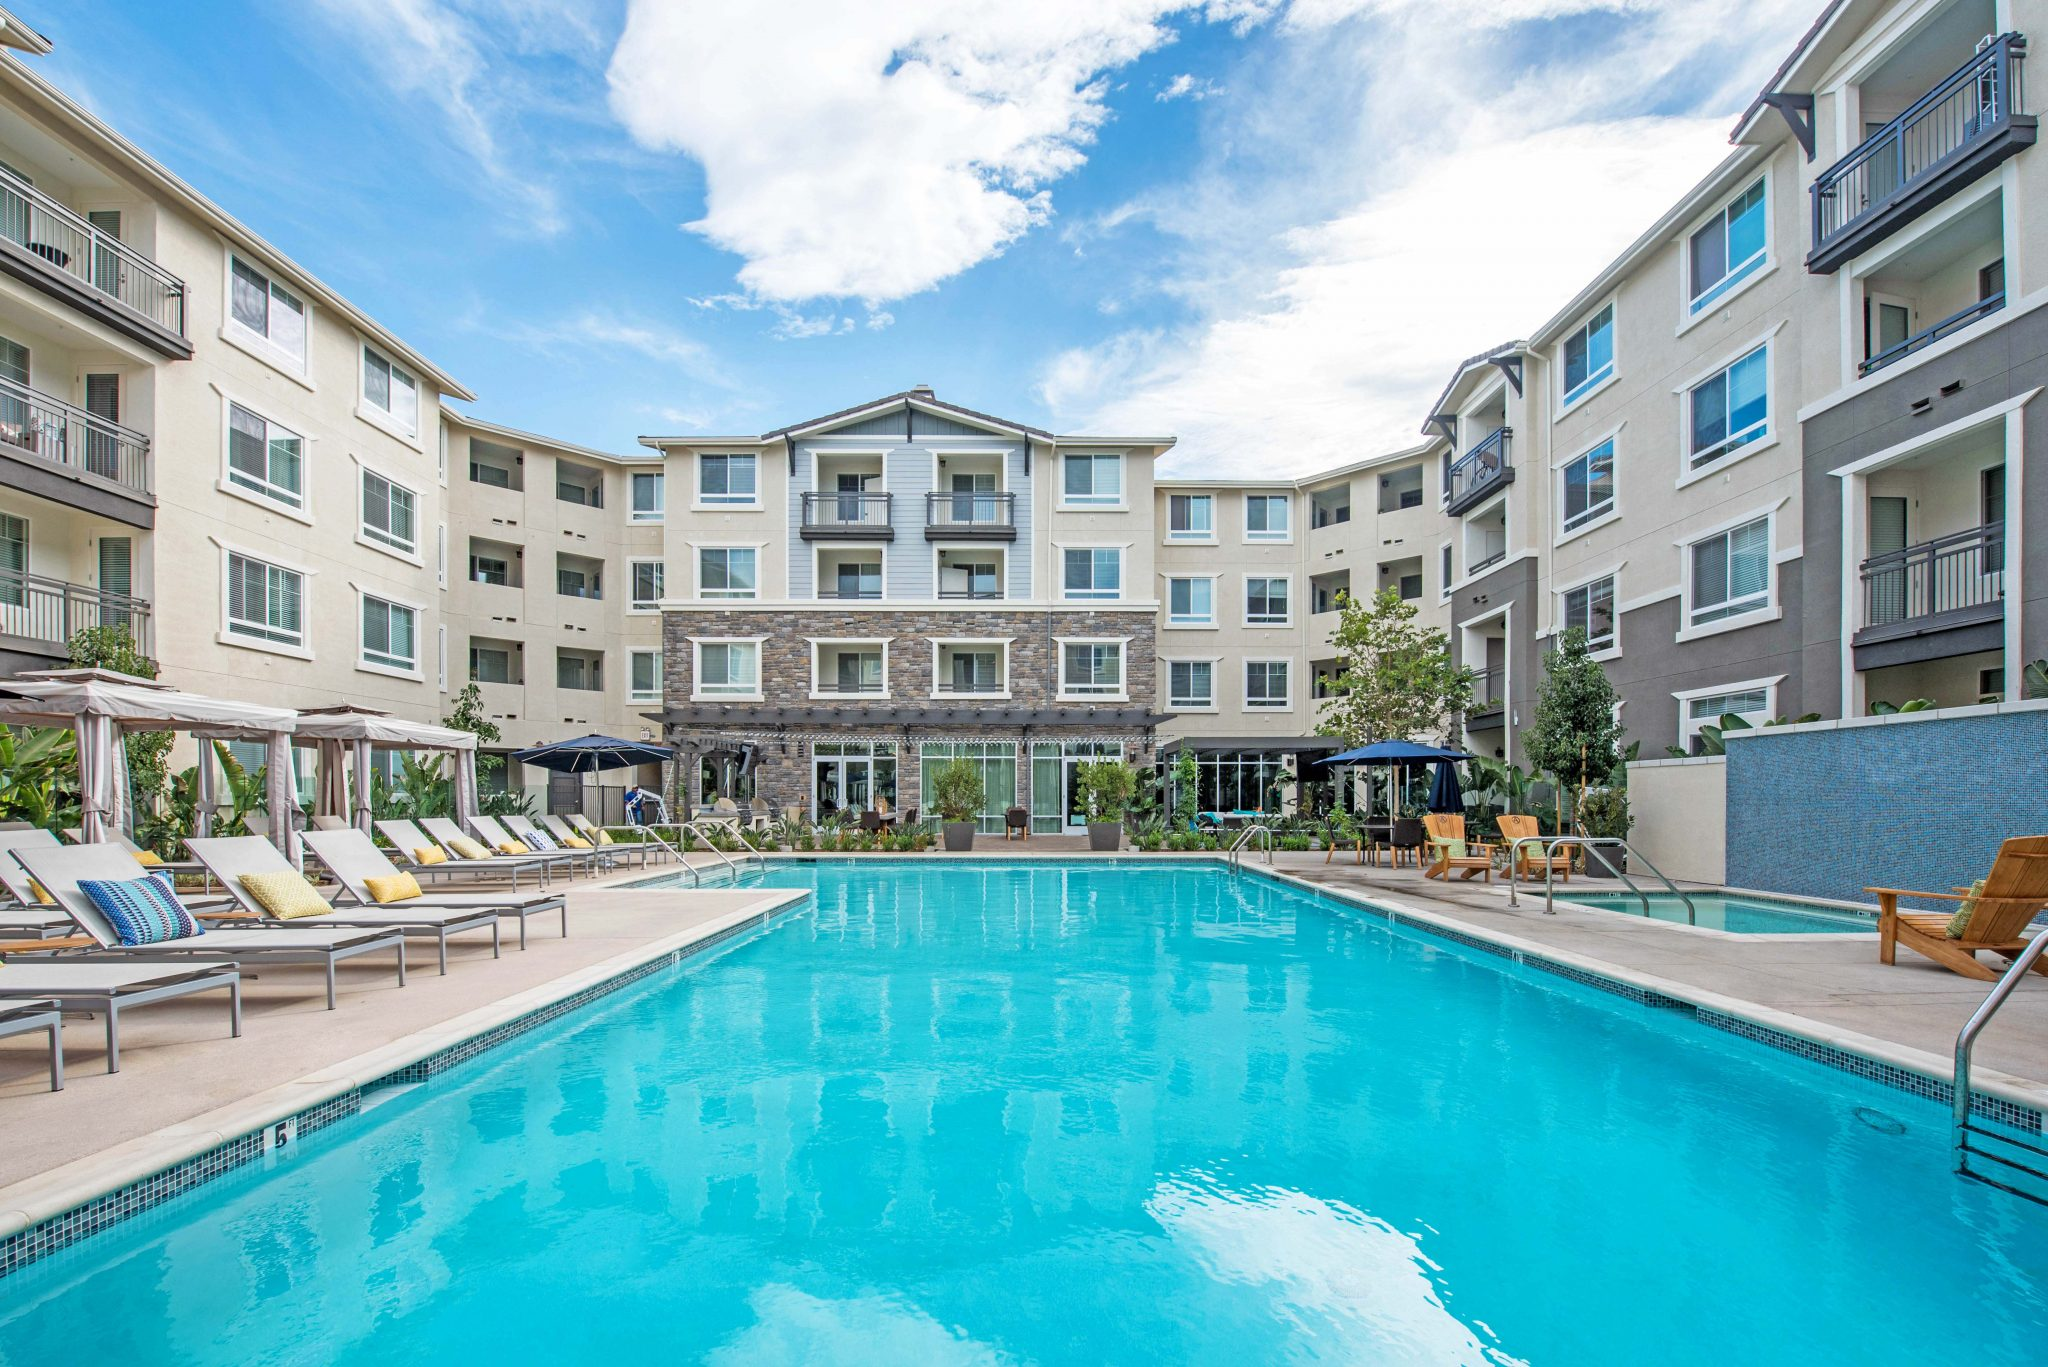 Exterior of apartment complex courtyard with pool, spa, lounge chairs and cabanas.